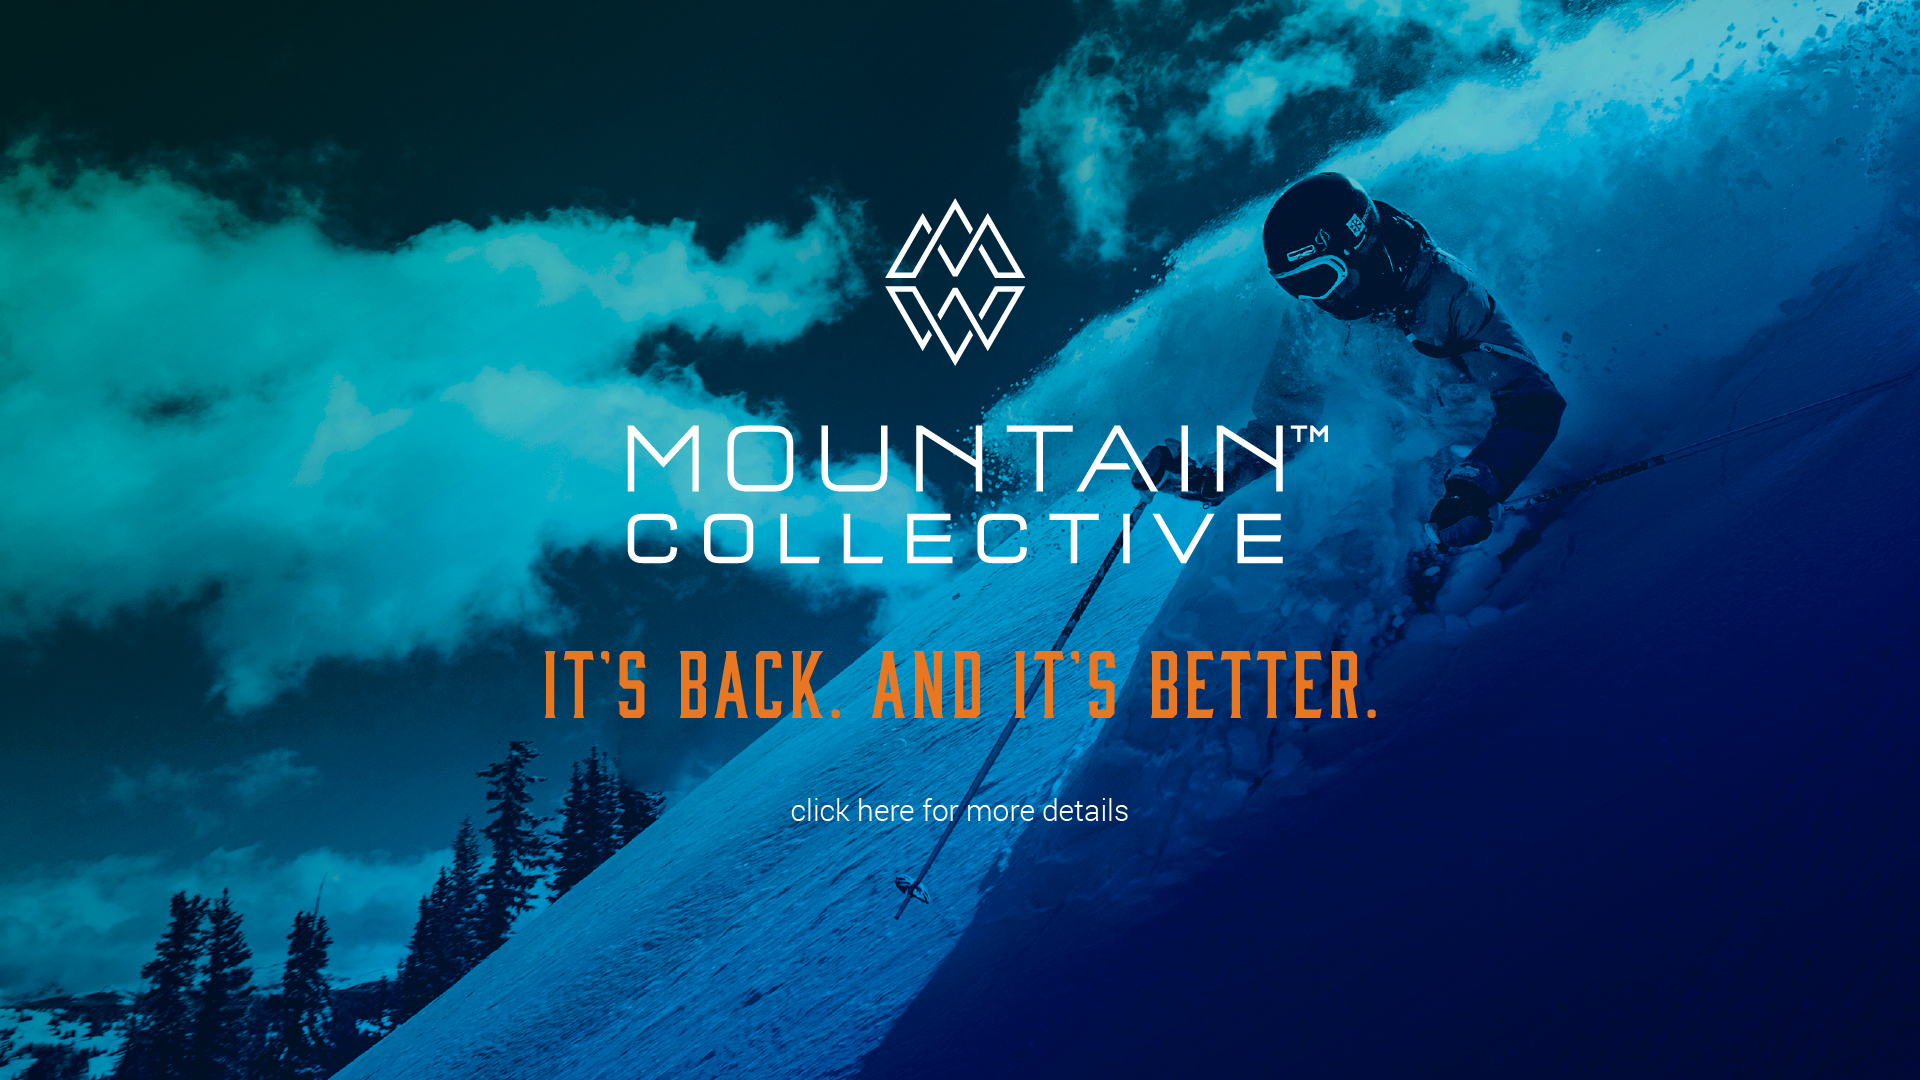 Niseko United elevated to Full Partner of The Mountain Collective